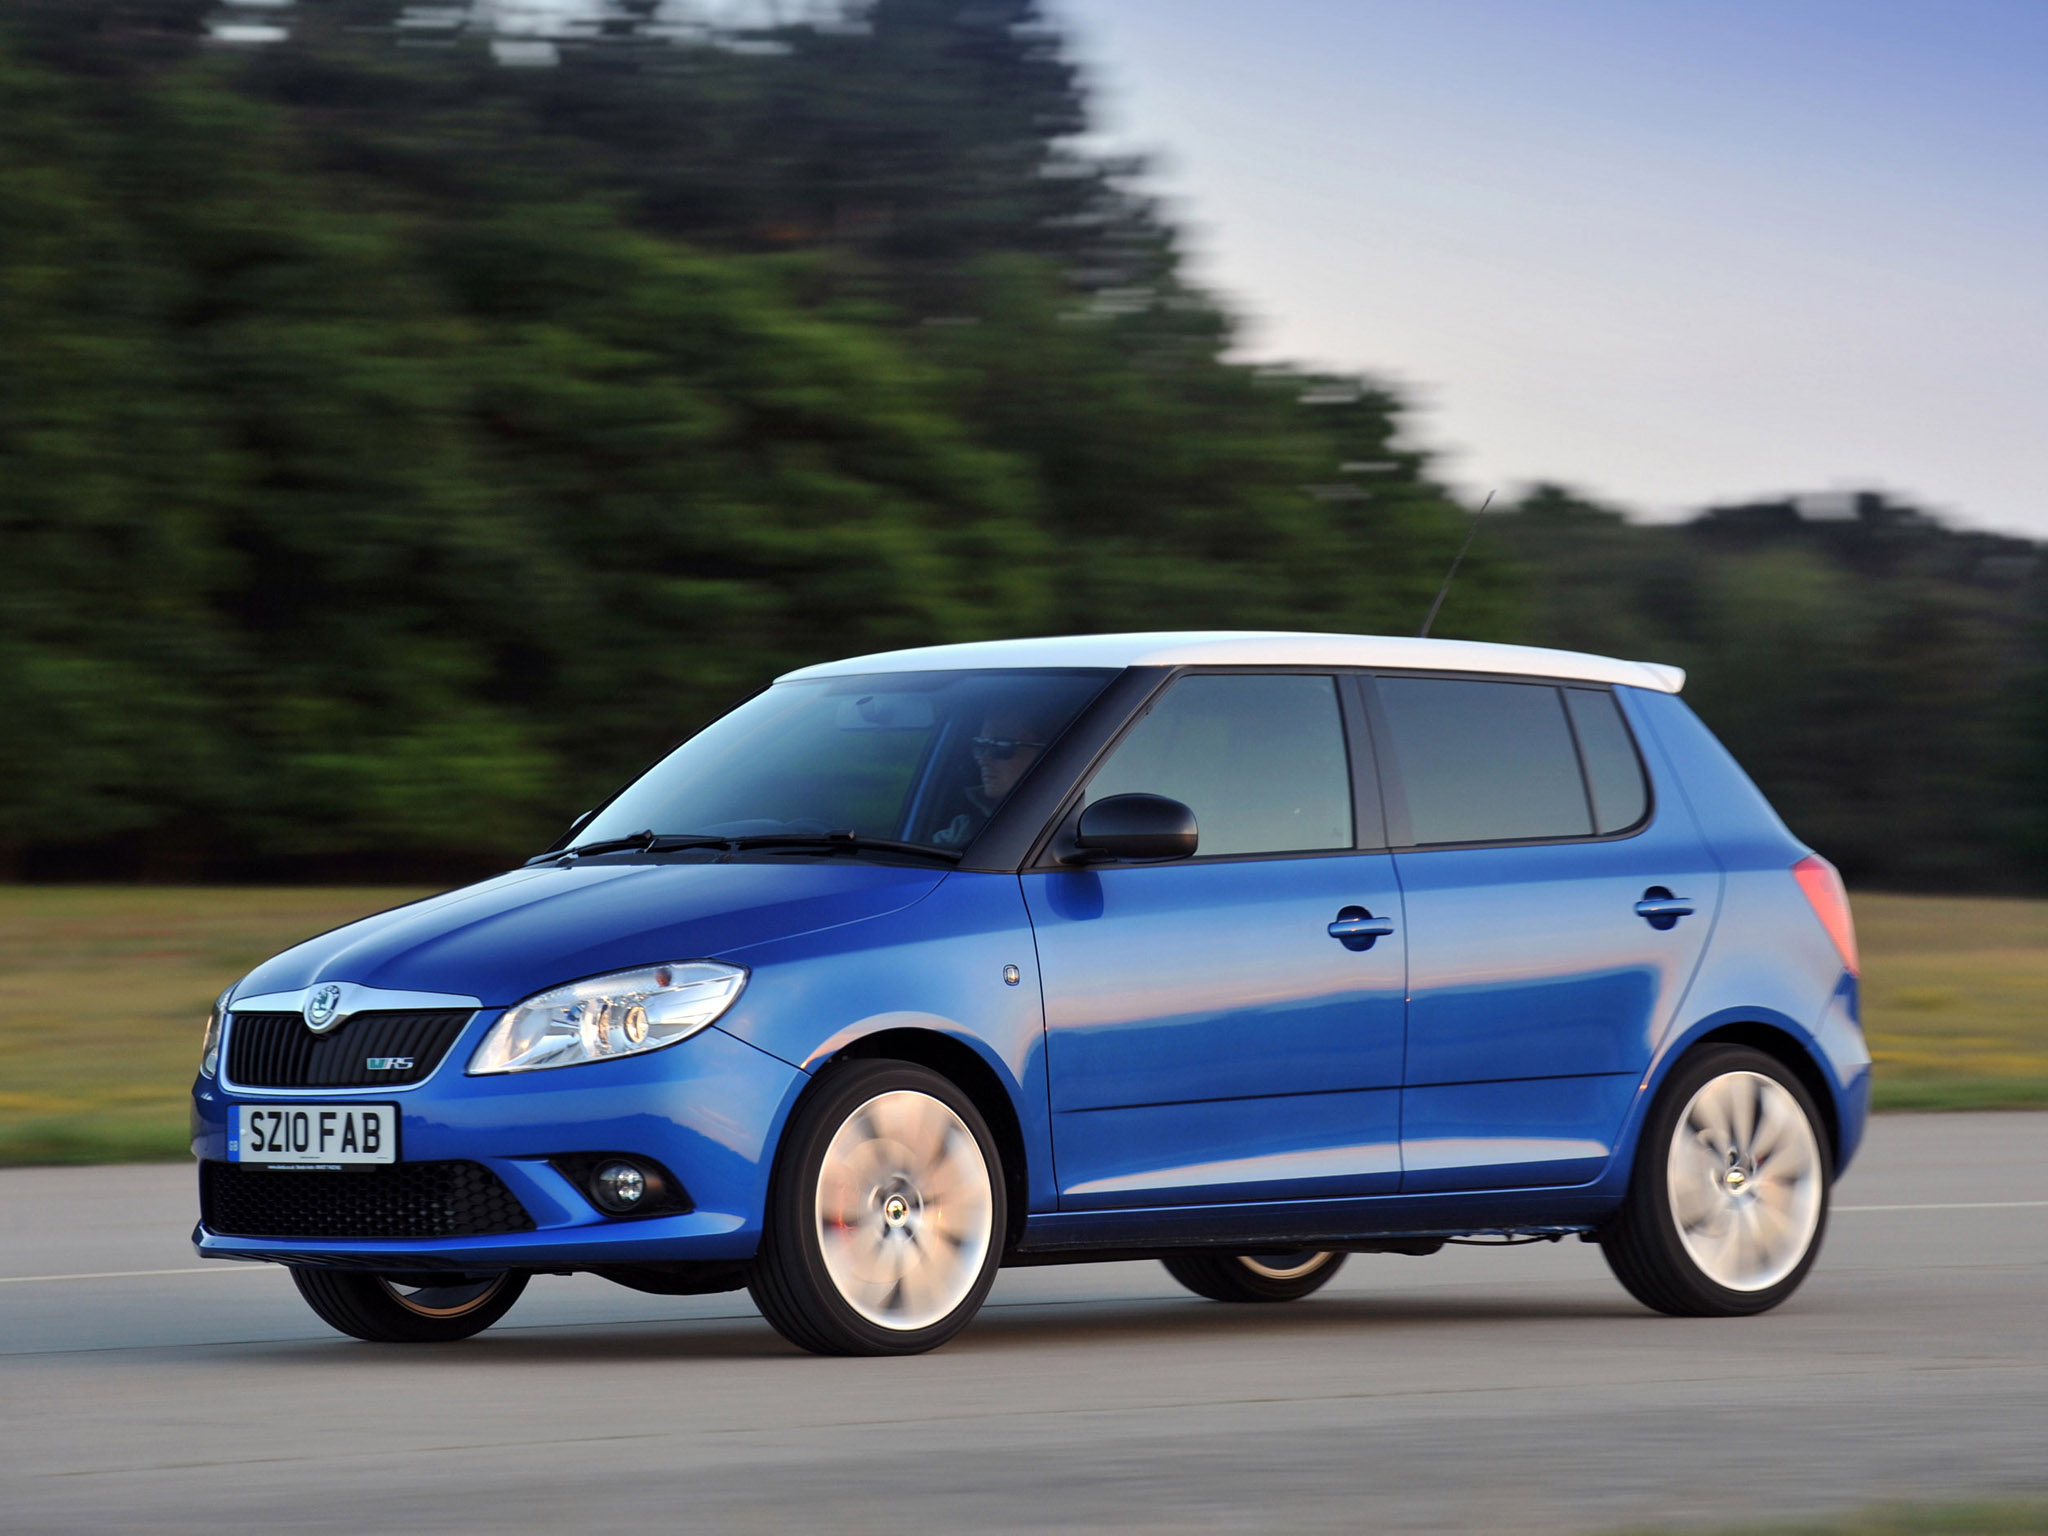 skoda fabia rs uk 2010 skoda fabia rs uk 2010 photo 19 car in pictures car photo gallery. Black Bedroom Furniture Sets. Home Design Ideas